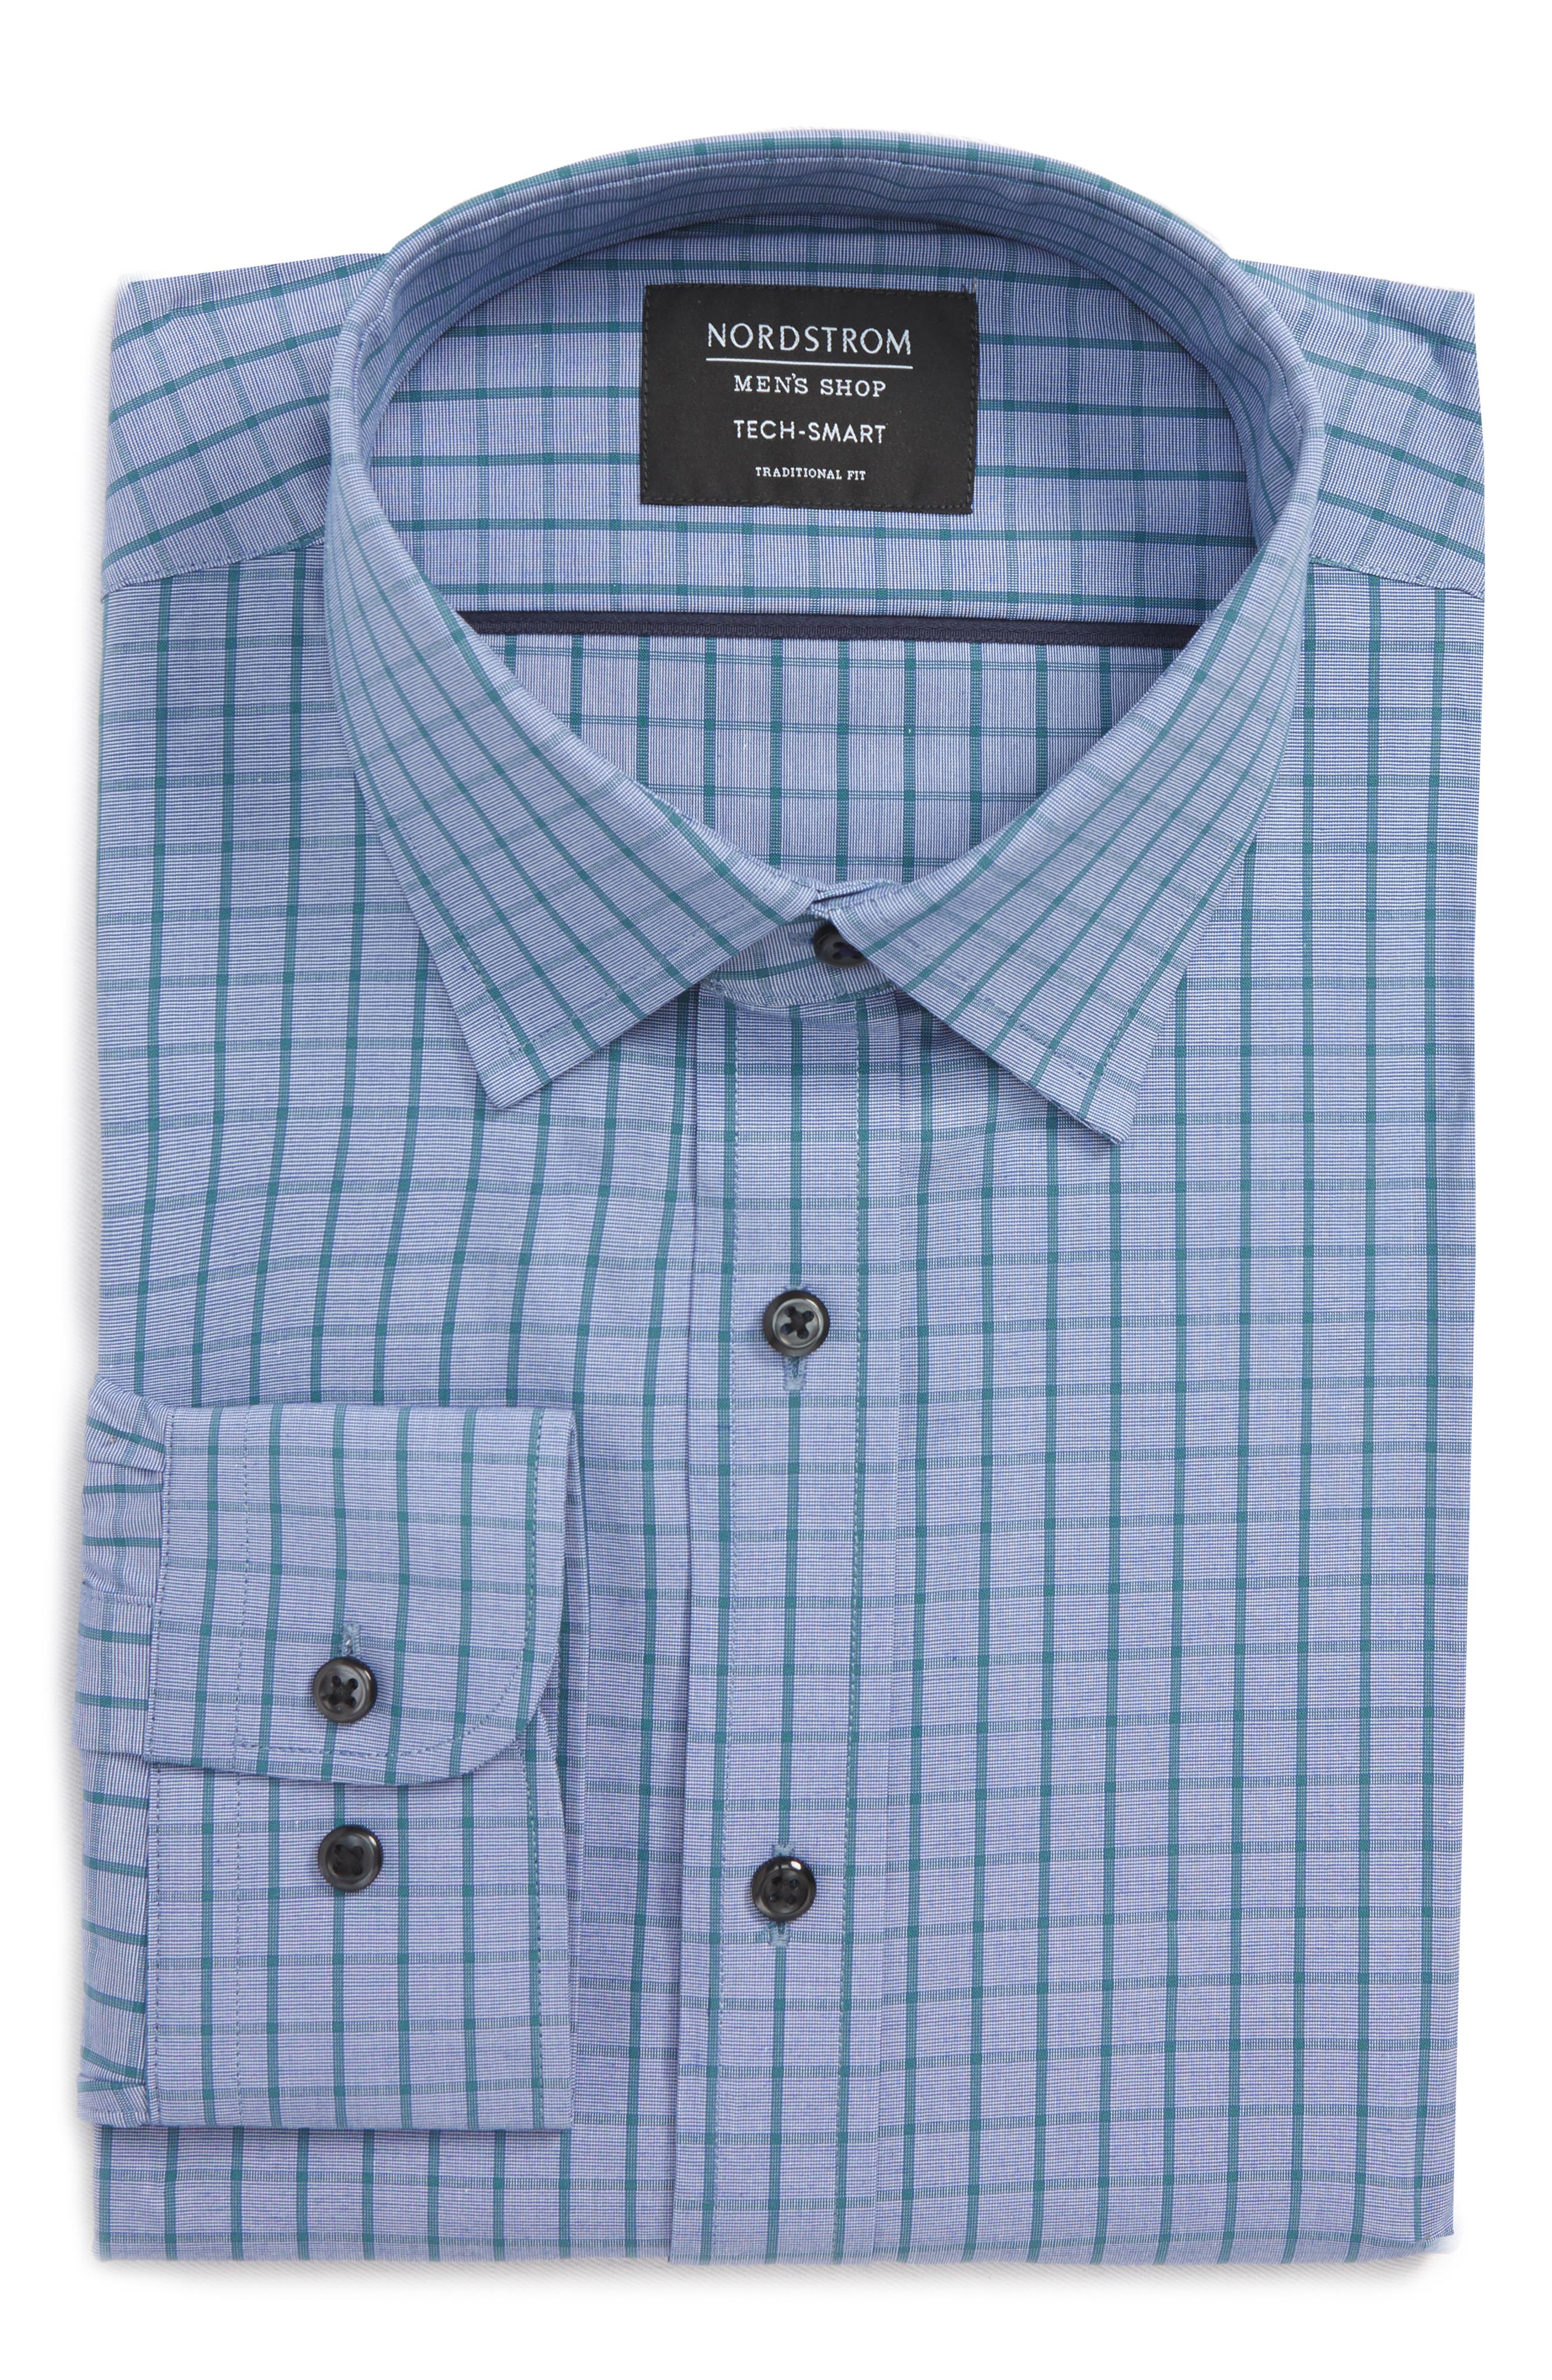 Tech-Smart Traditional Fit Stretch Check Dress Shirt,                             Alternate thumbnail 6, color,                             Teal Hydro